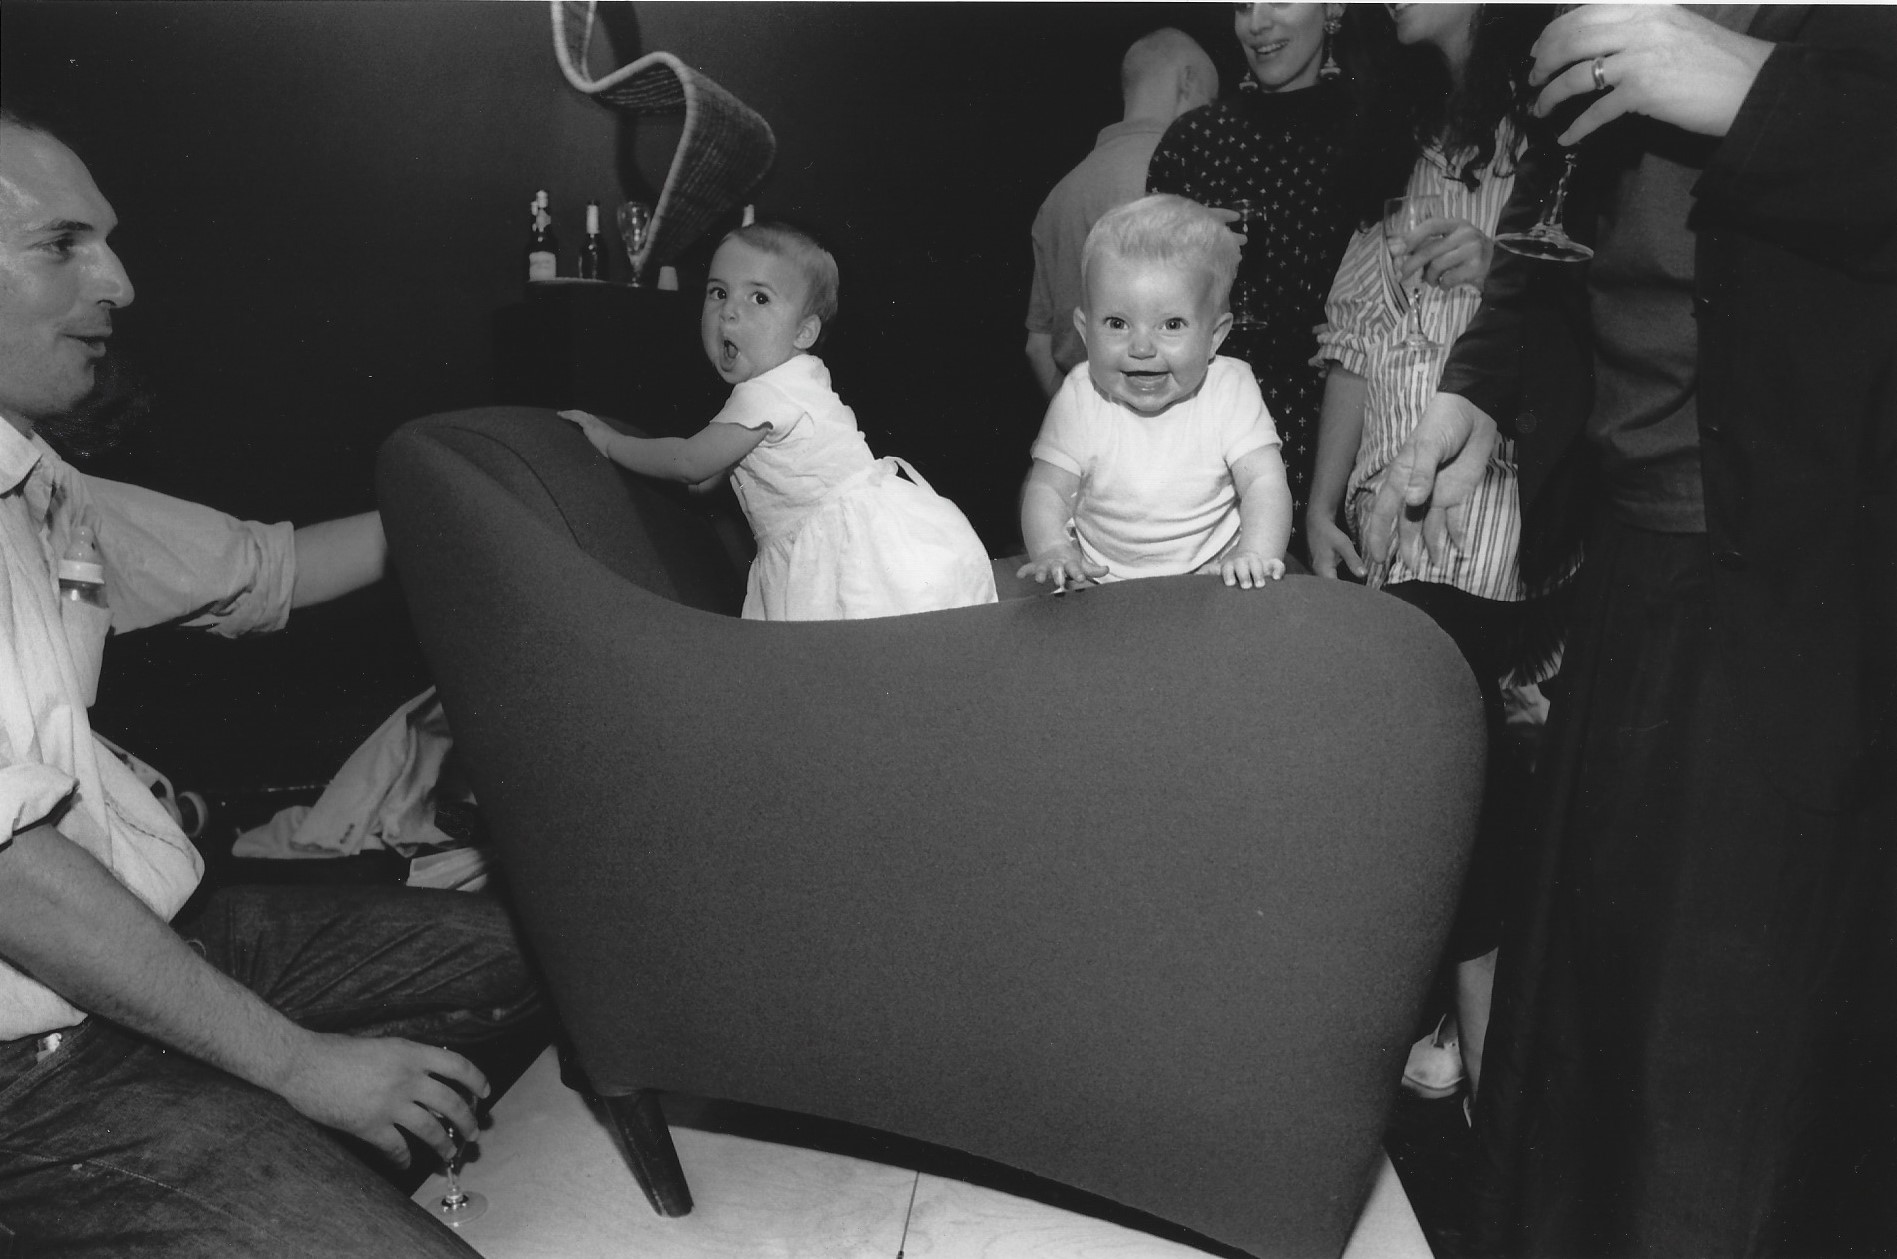 1991-balzac-image-an-early-version-of-the-balzac-armchair-on-show-at-scp-curtain-road-in-1991.-featuring-sheridan-s-daughter-and-a-friend